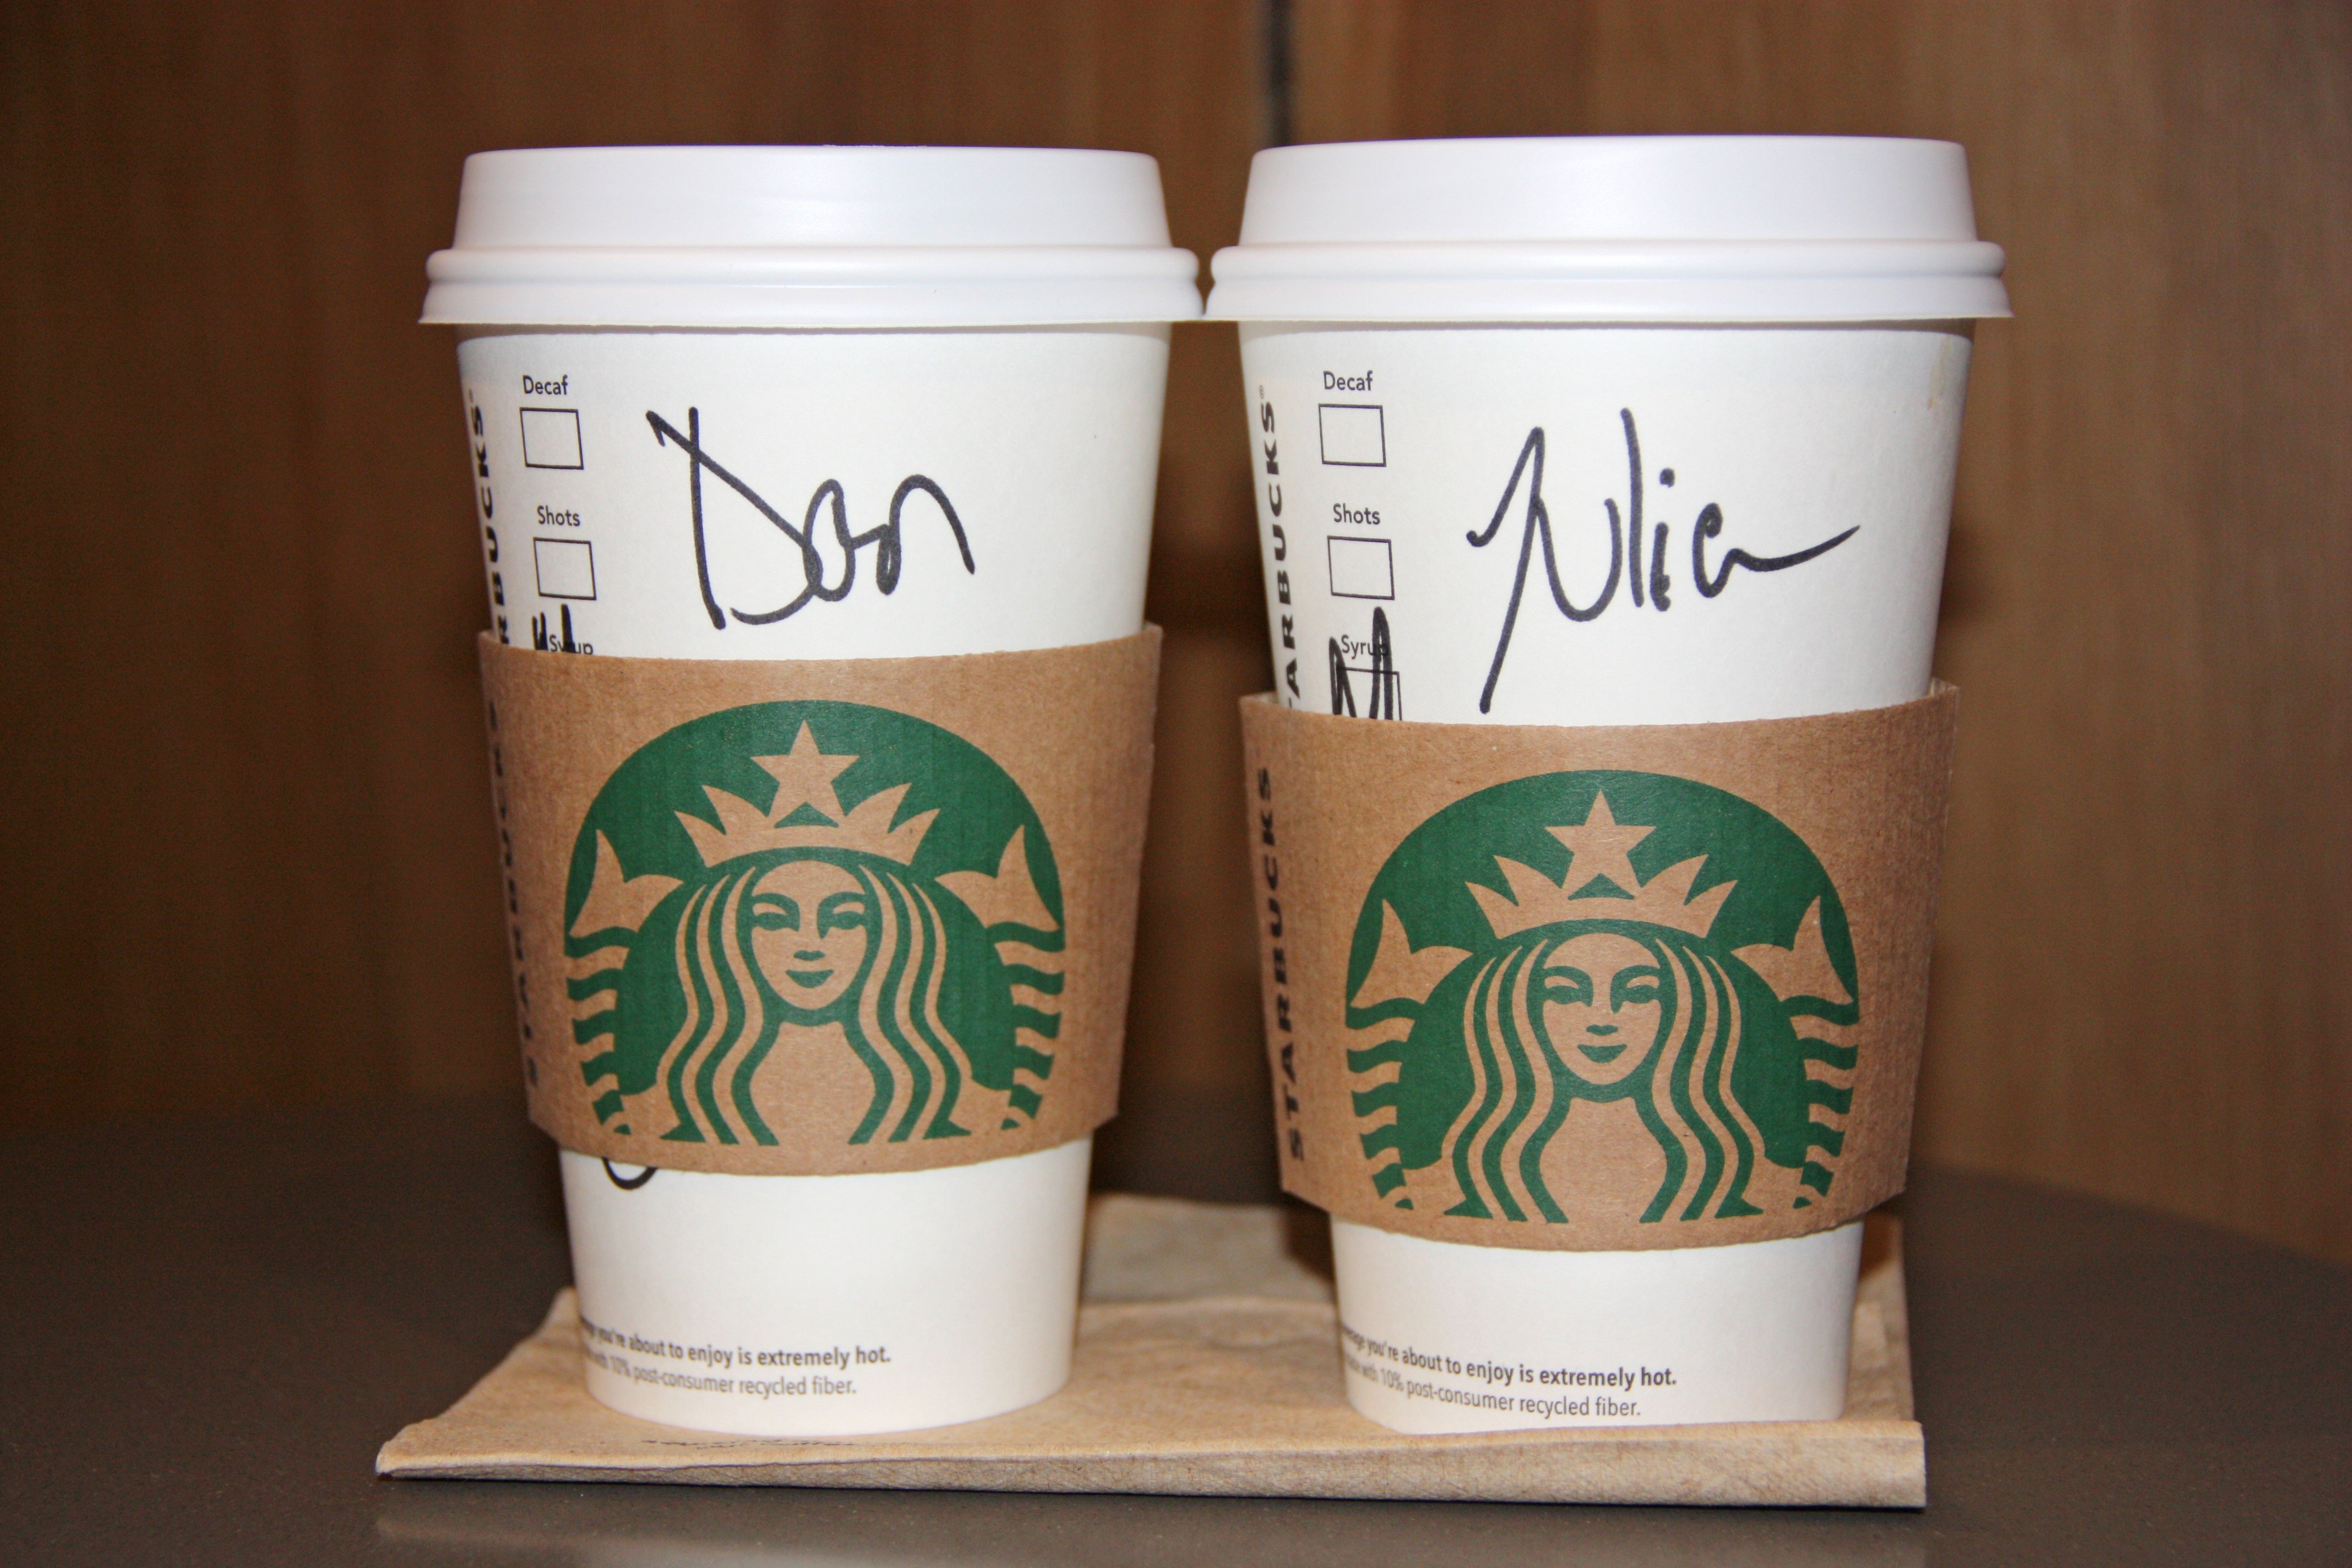 two starbucks hot latte cups with customer name written on them.